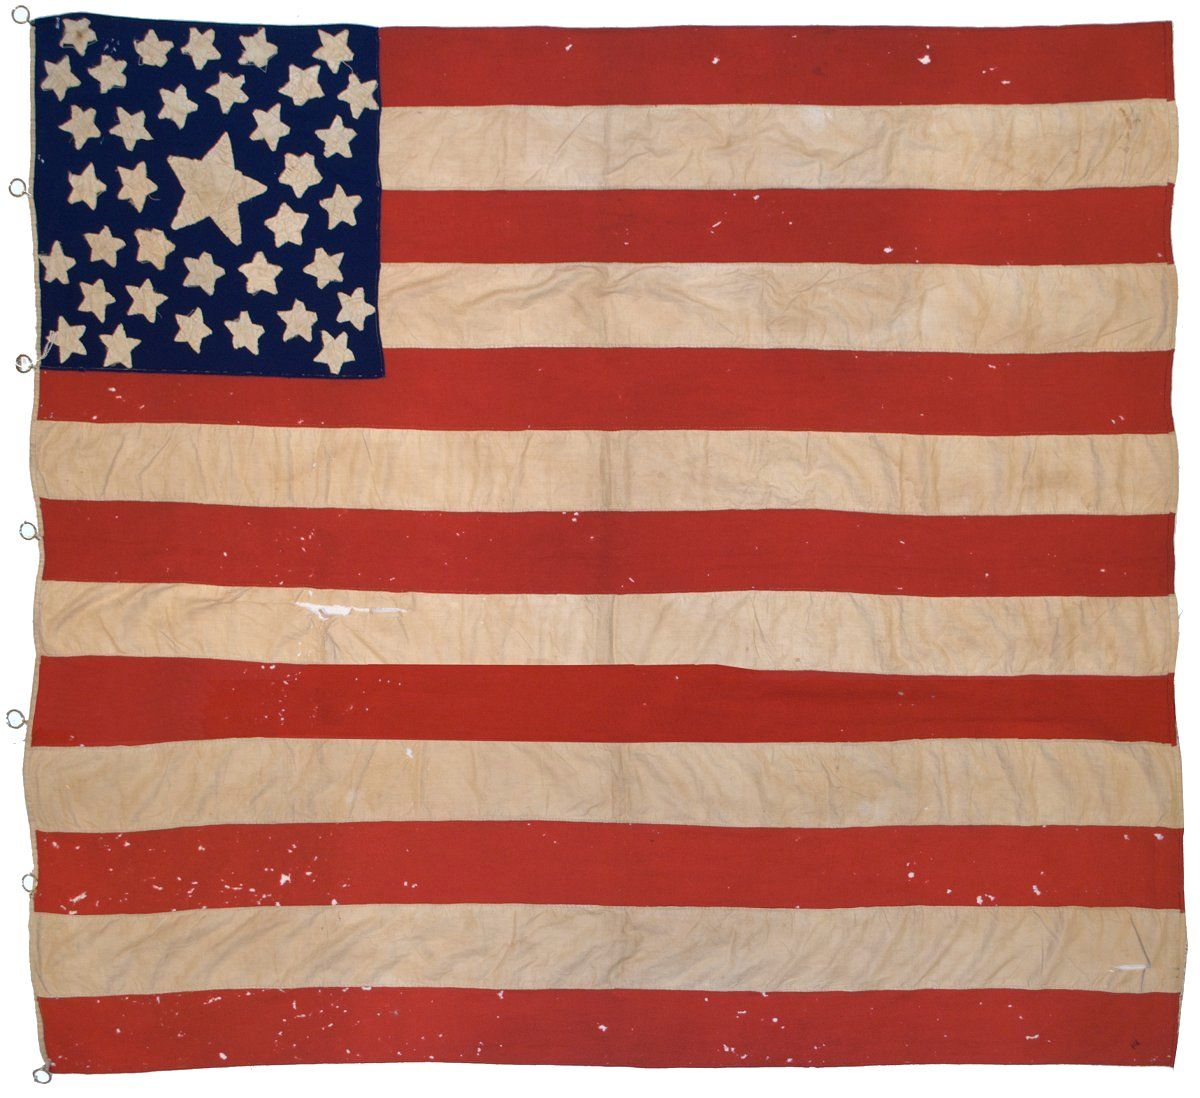 Rare Flags Antique American Flags Historic American Flags Historical Flags American Flag Vintage American Flag